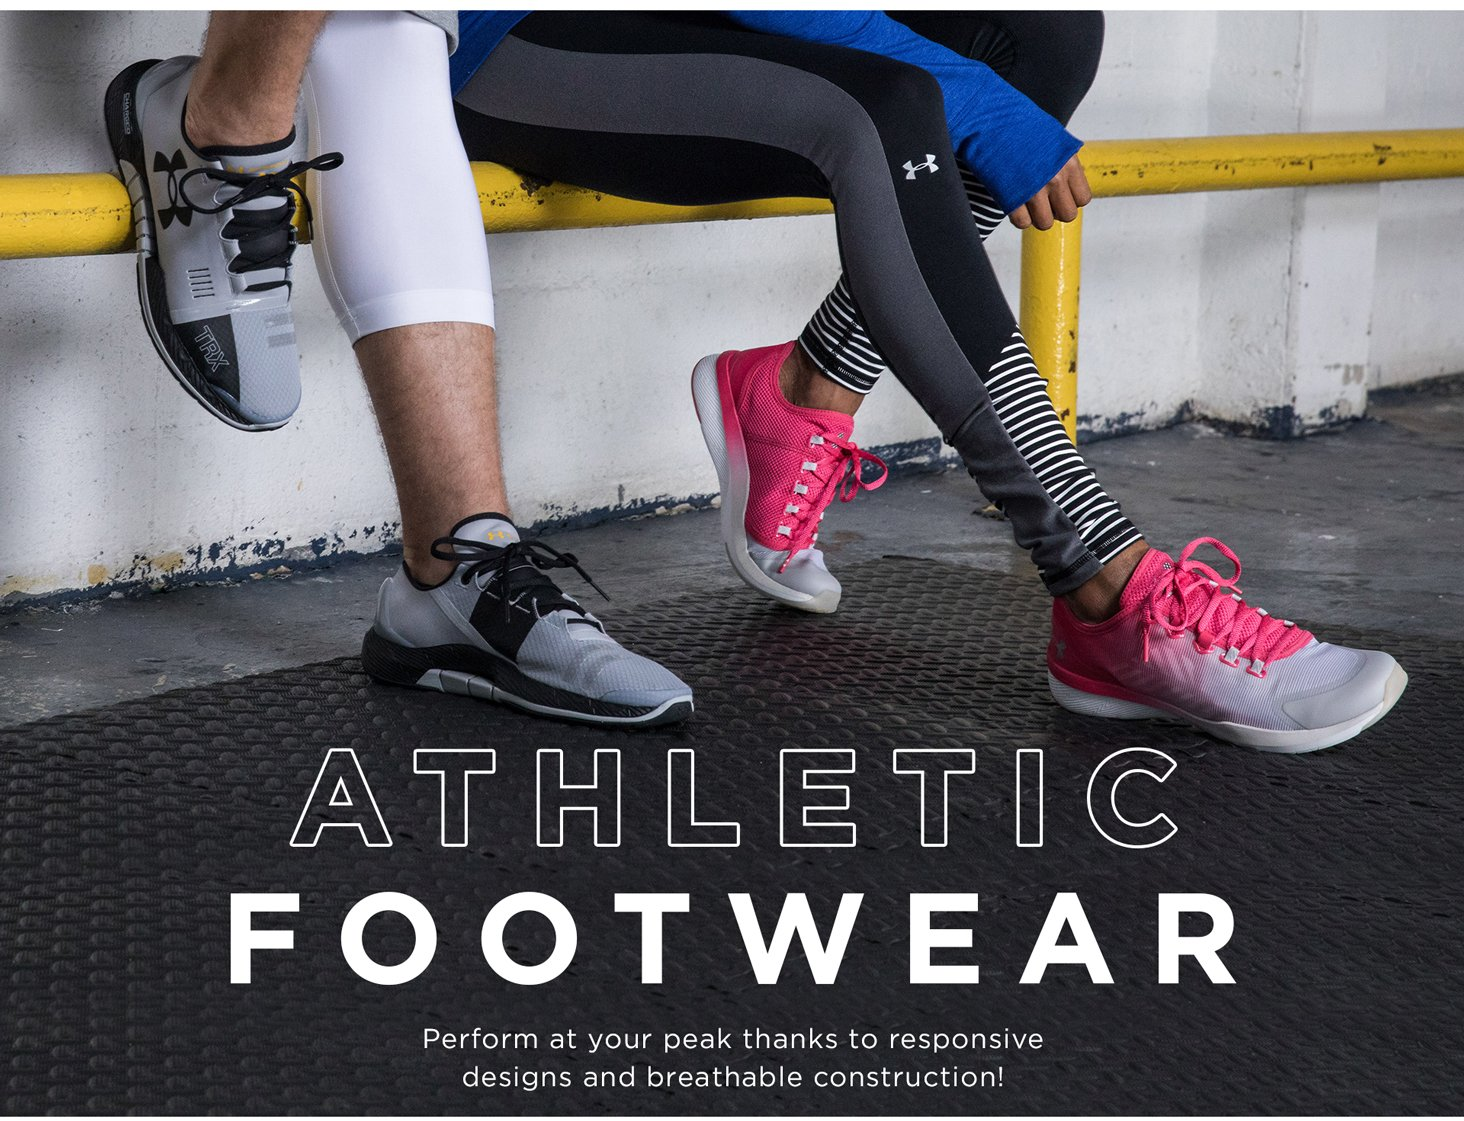 Athletic Footwear: Perform at your peak thanks to responsive designs and breathable construction!